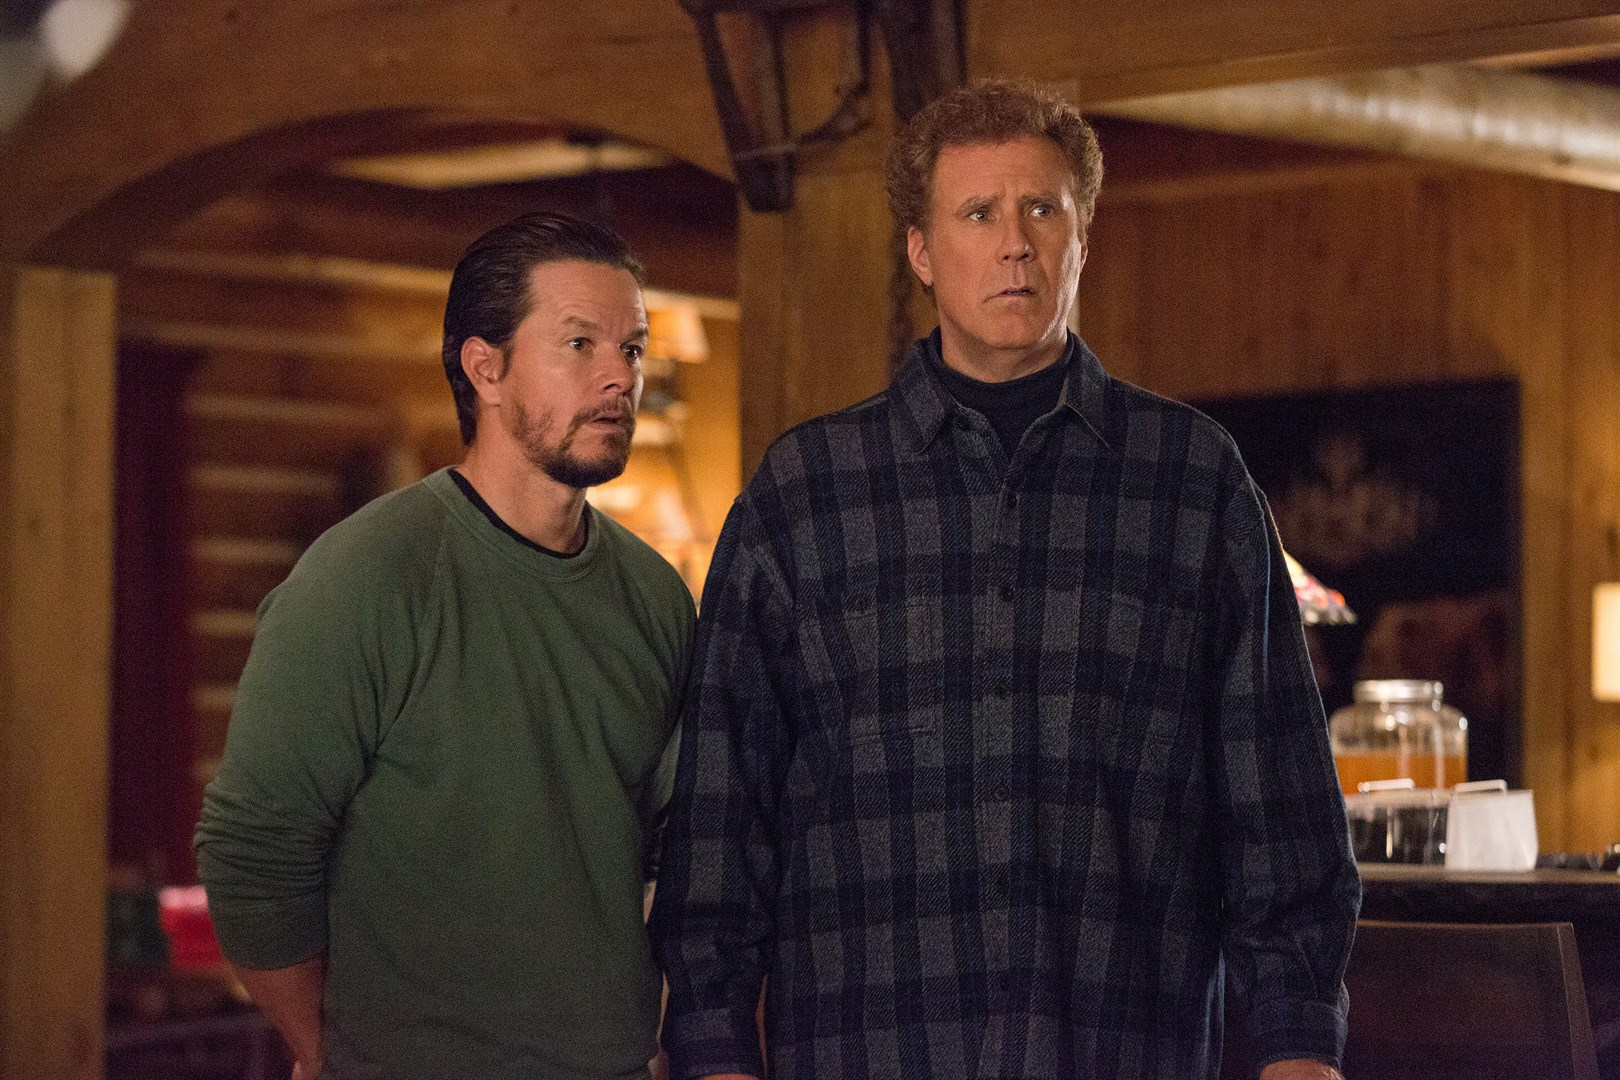 daddys home 2015 full movie online free no download